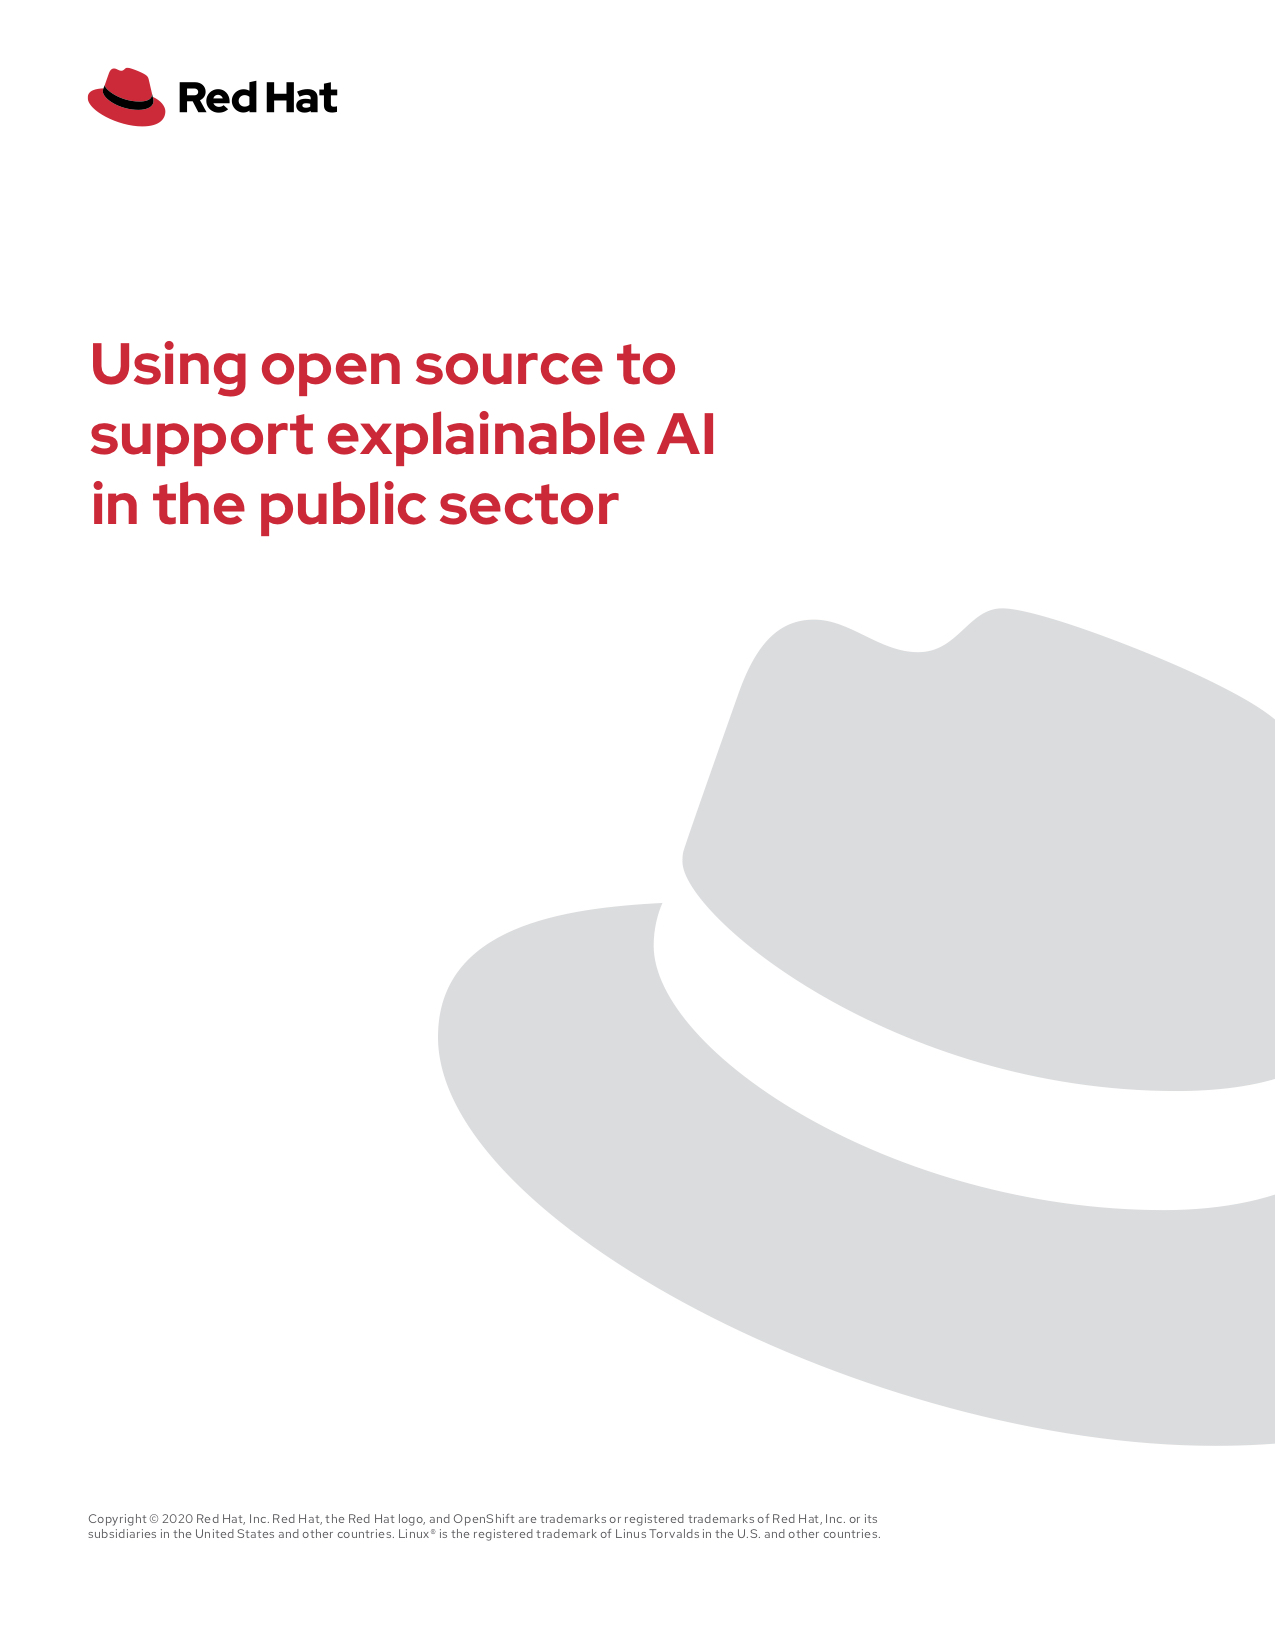 Open Source to Support AI in the Public Sector_cover